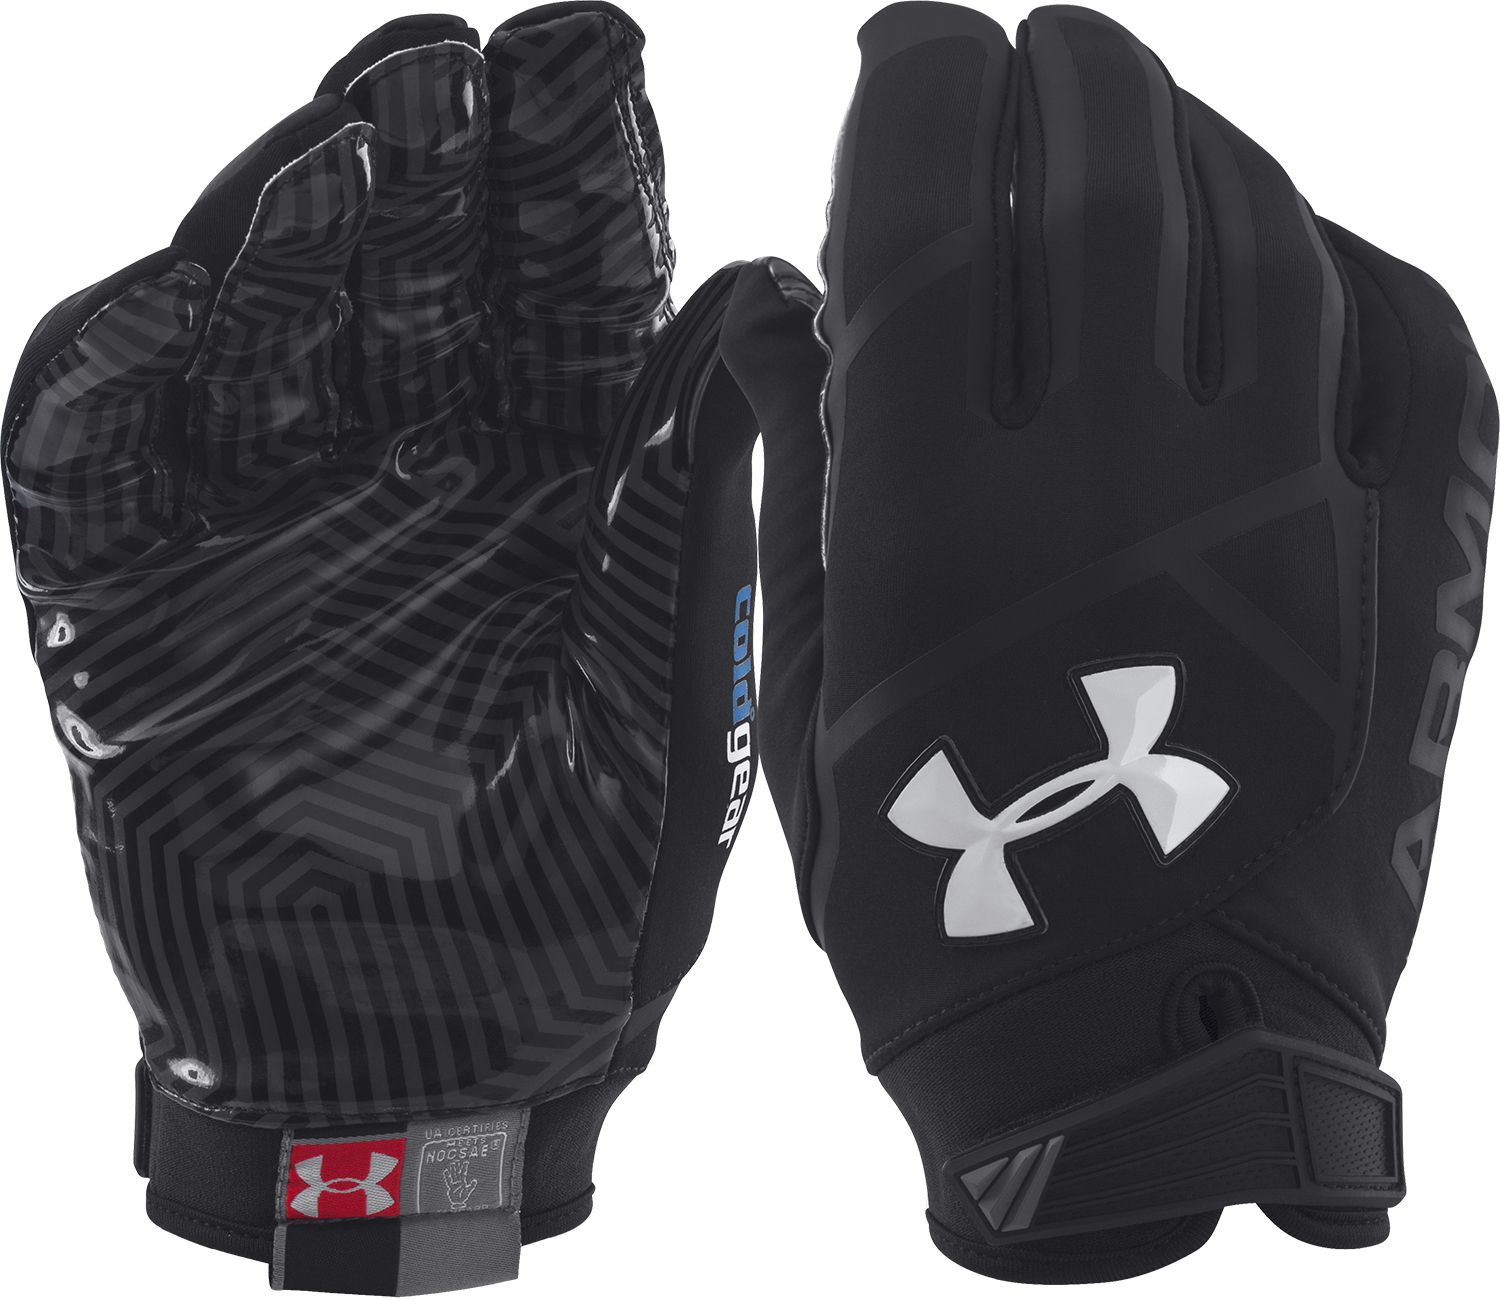 Under armour leather work gloves - Under Armour Football Gloves S Sporting Goods